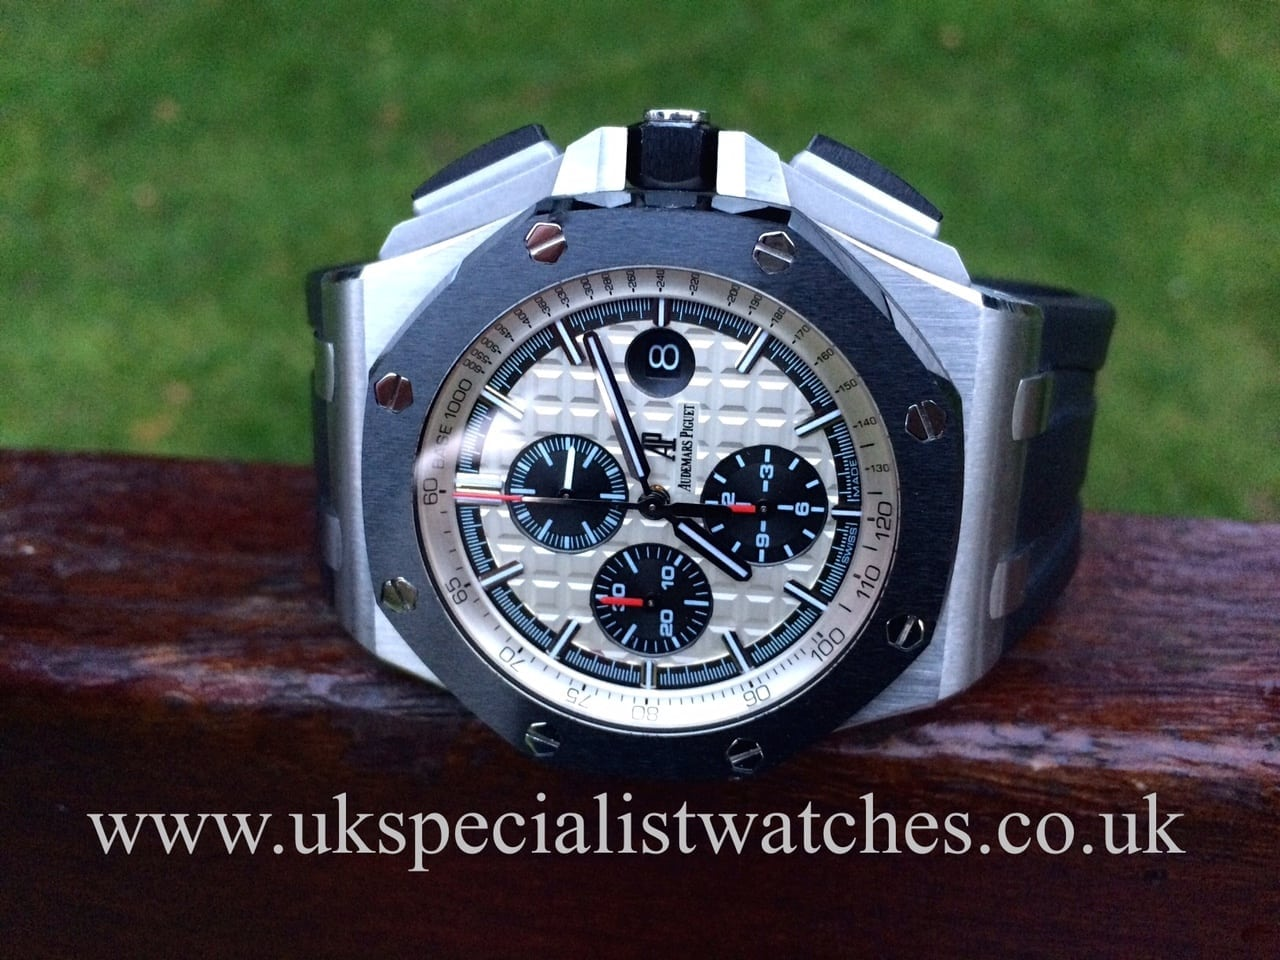 Audemars piguet royal oak offshore ceramic 26400so oo a002ca 01 uk specialist watches for Royal oak offshore ceramic